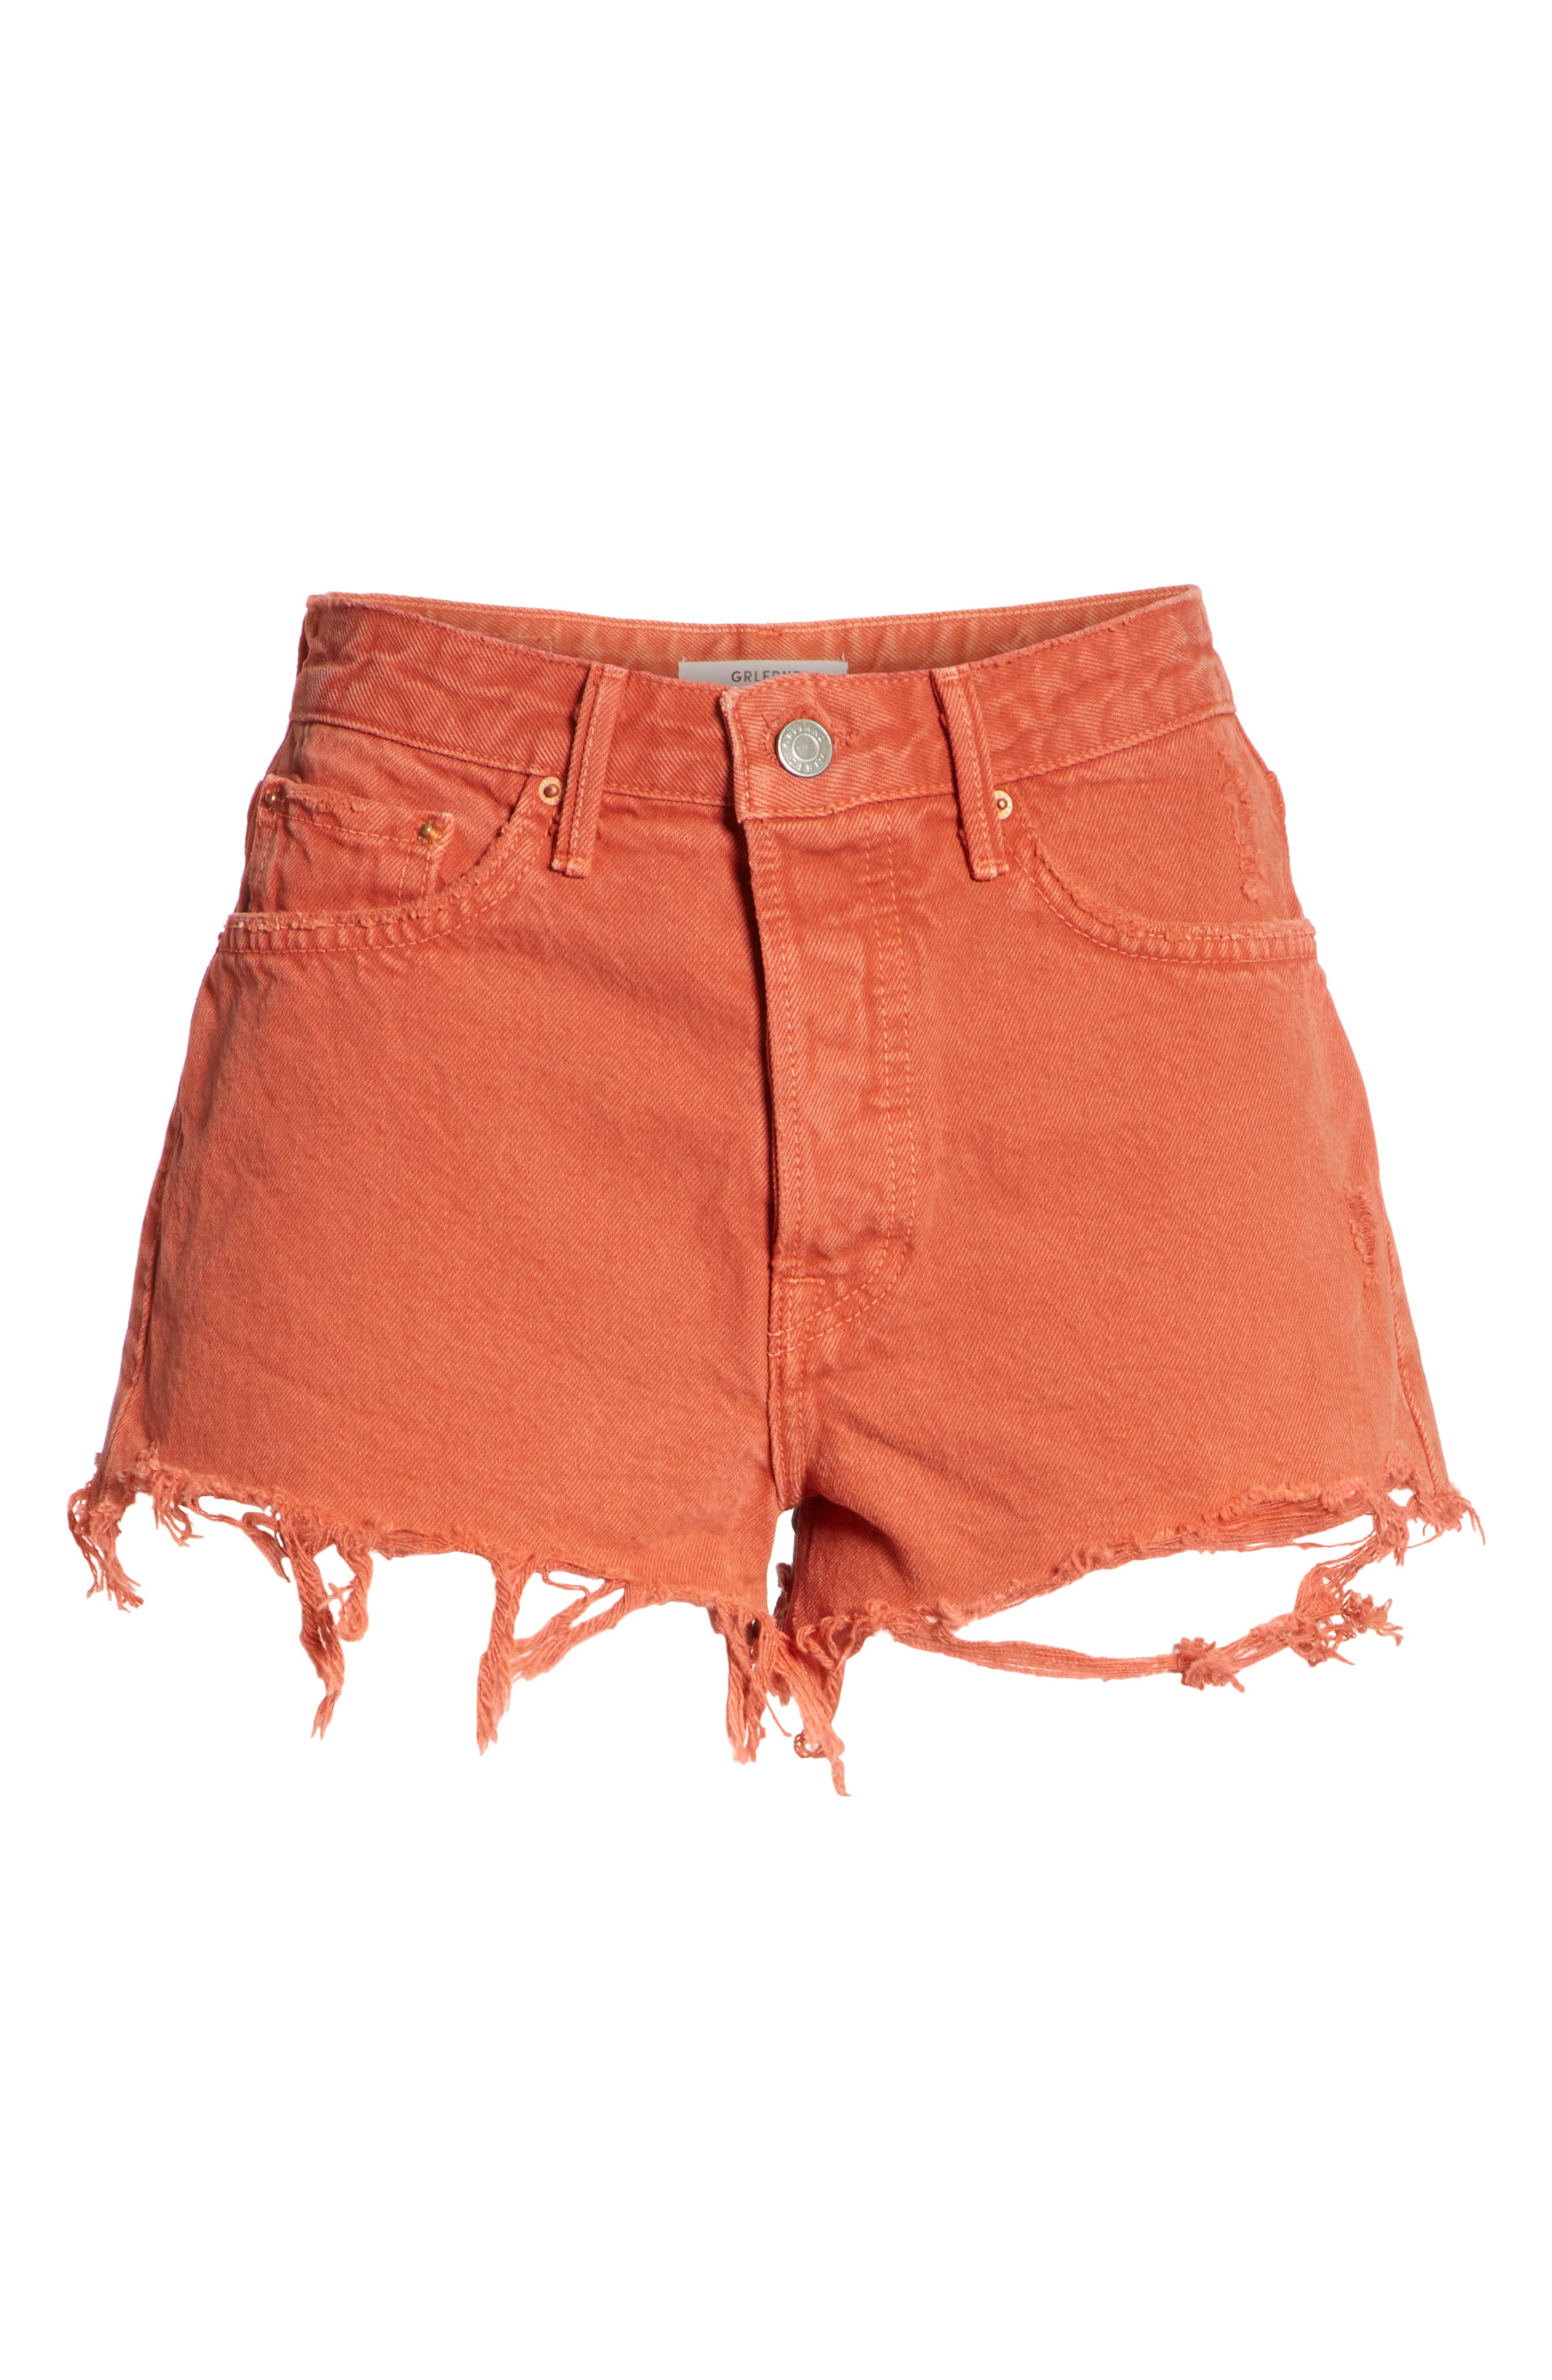 Cindy Rigid High Waist Denim Shorts,                             Alternate thumbnail 6, color,                             Spice Market